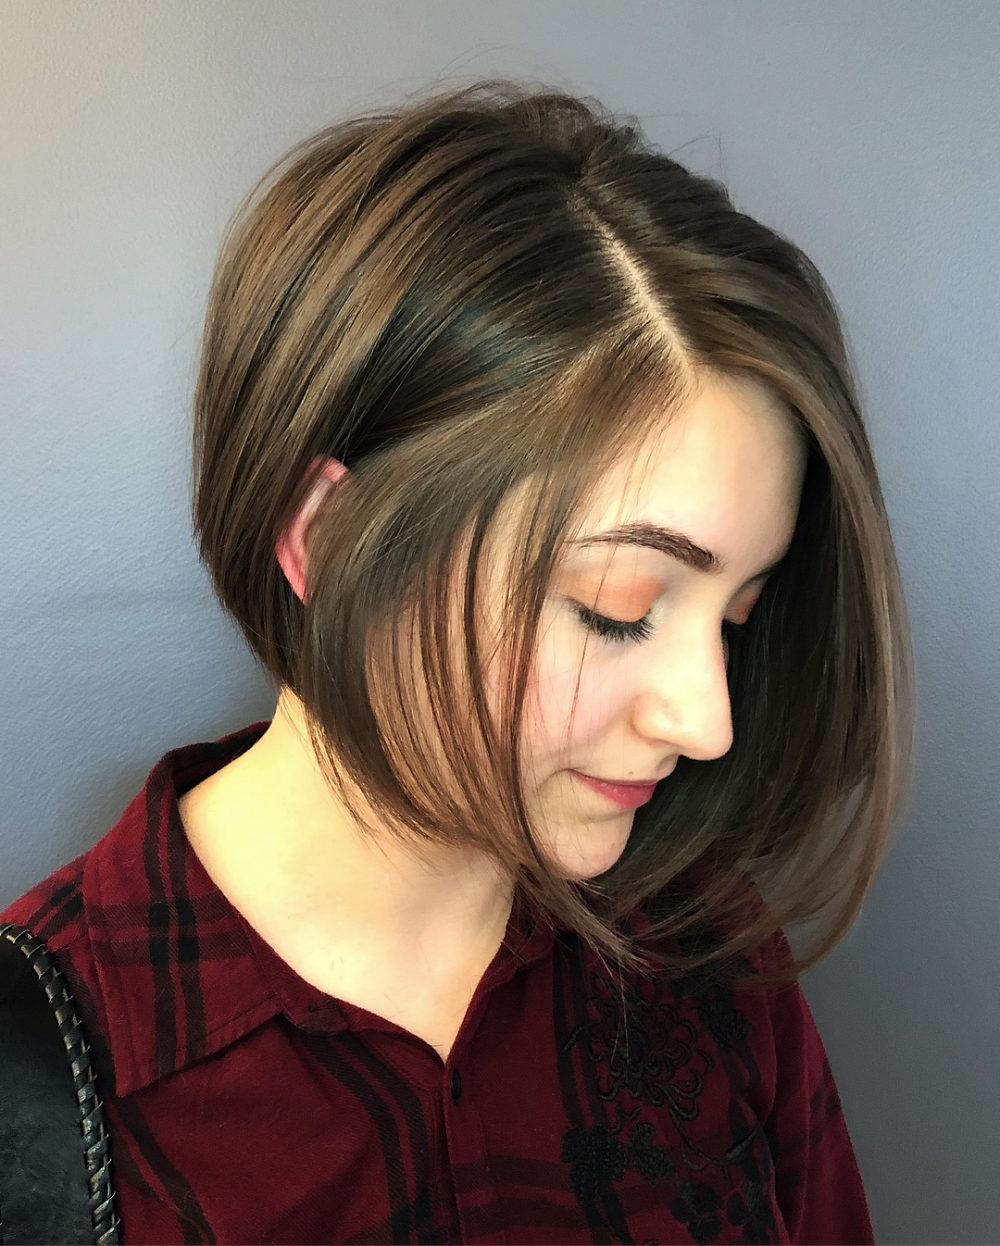 33 Flattering Short Hairstyles For Round Faces In 2018 Pertaining To Short Hairstyles For Small Faces (View 18 of 25)